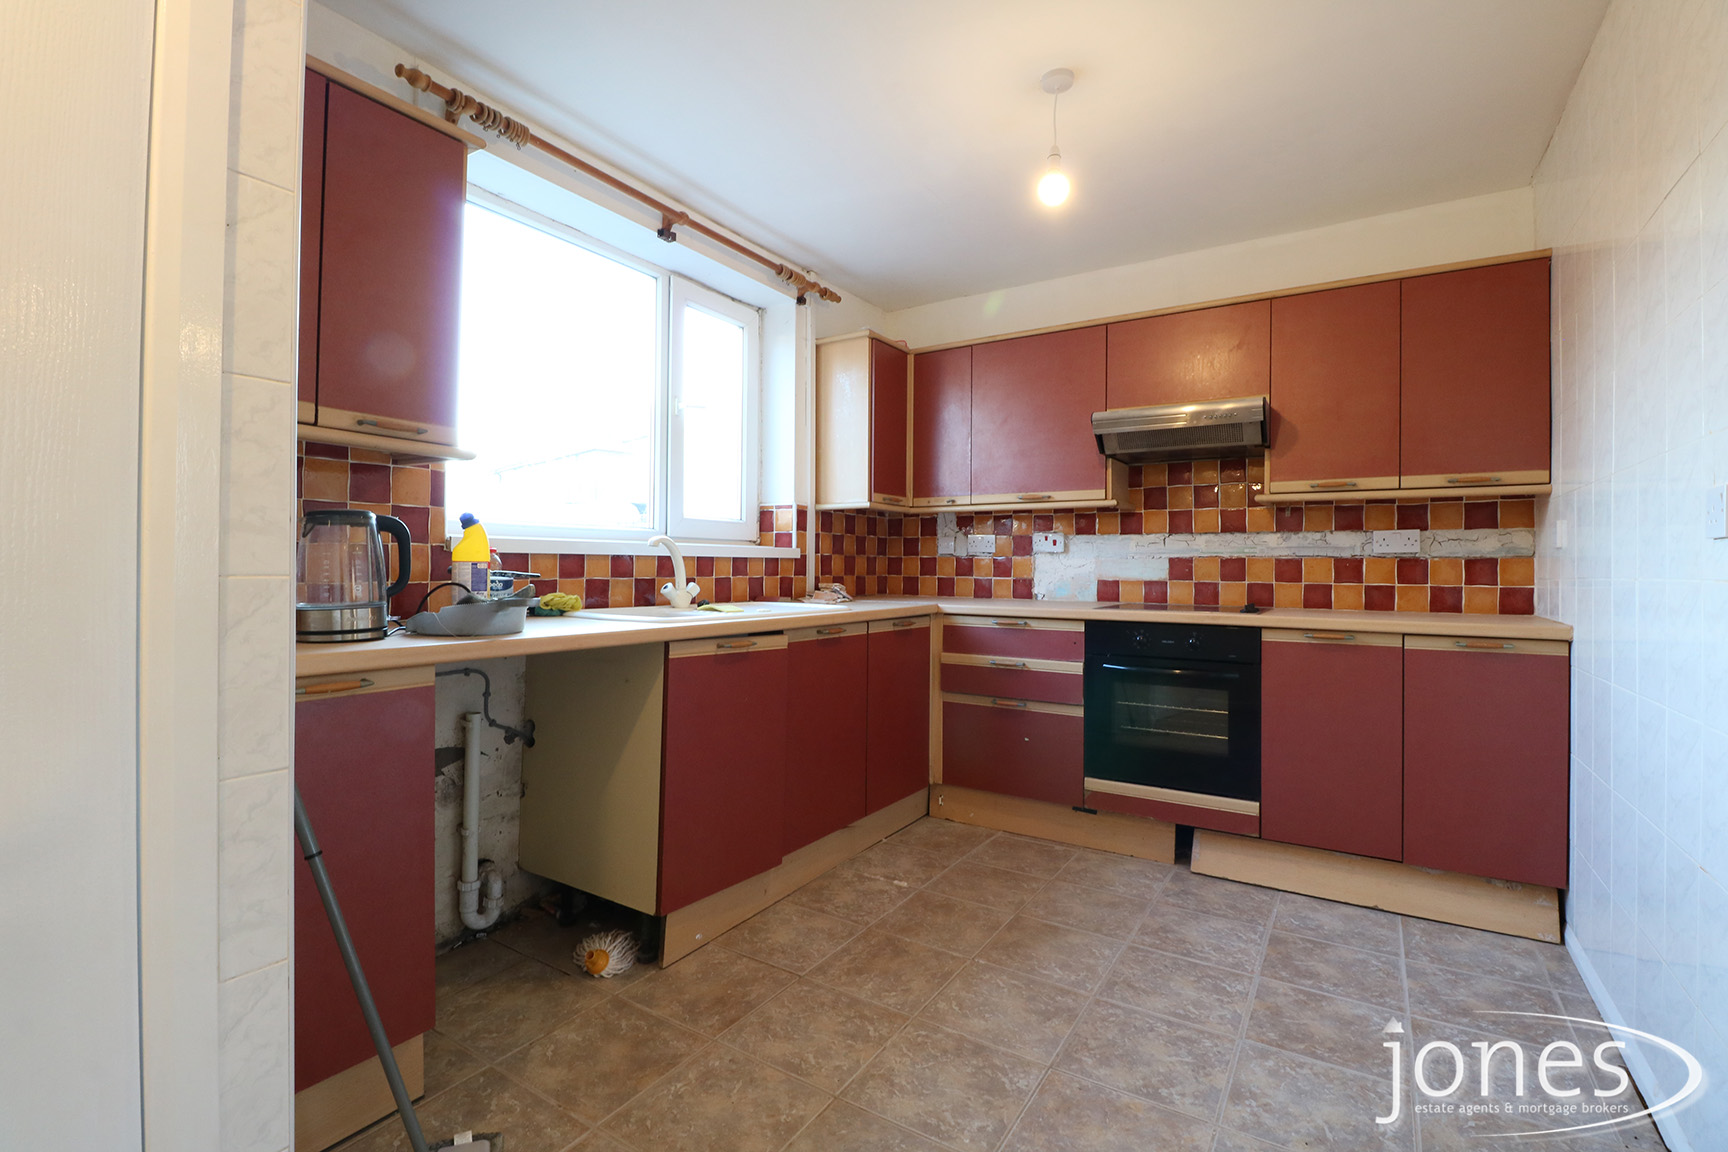 Home for Sale Let - Photo 03 Greta Road,Norton,Stockton on tees,TS20 1BA